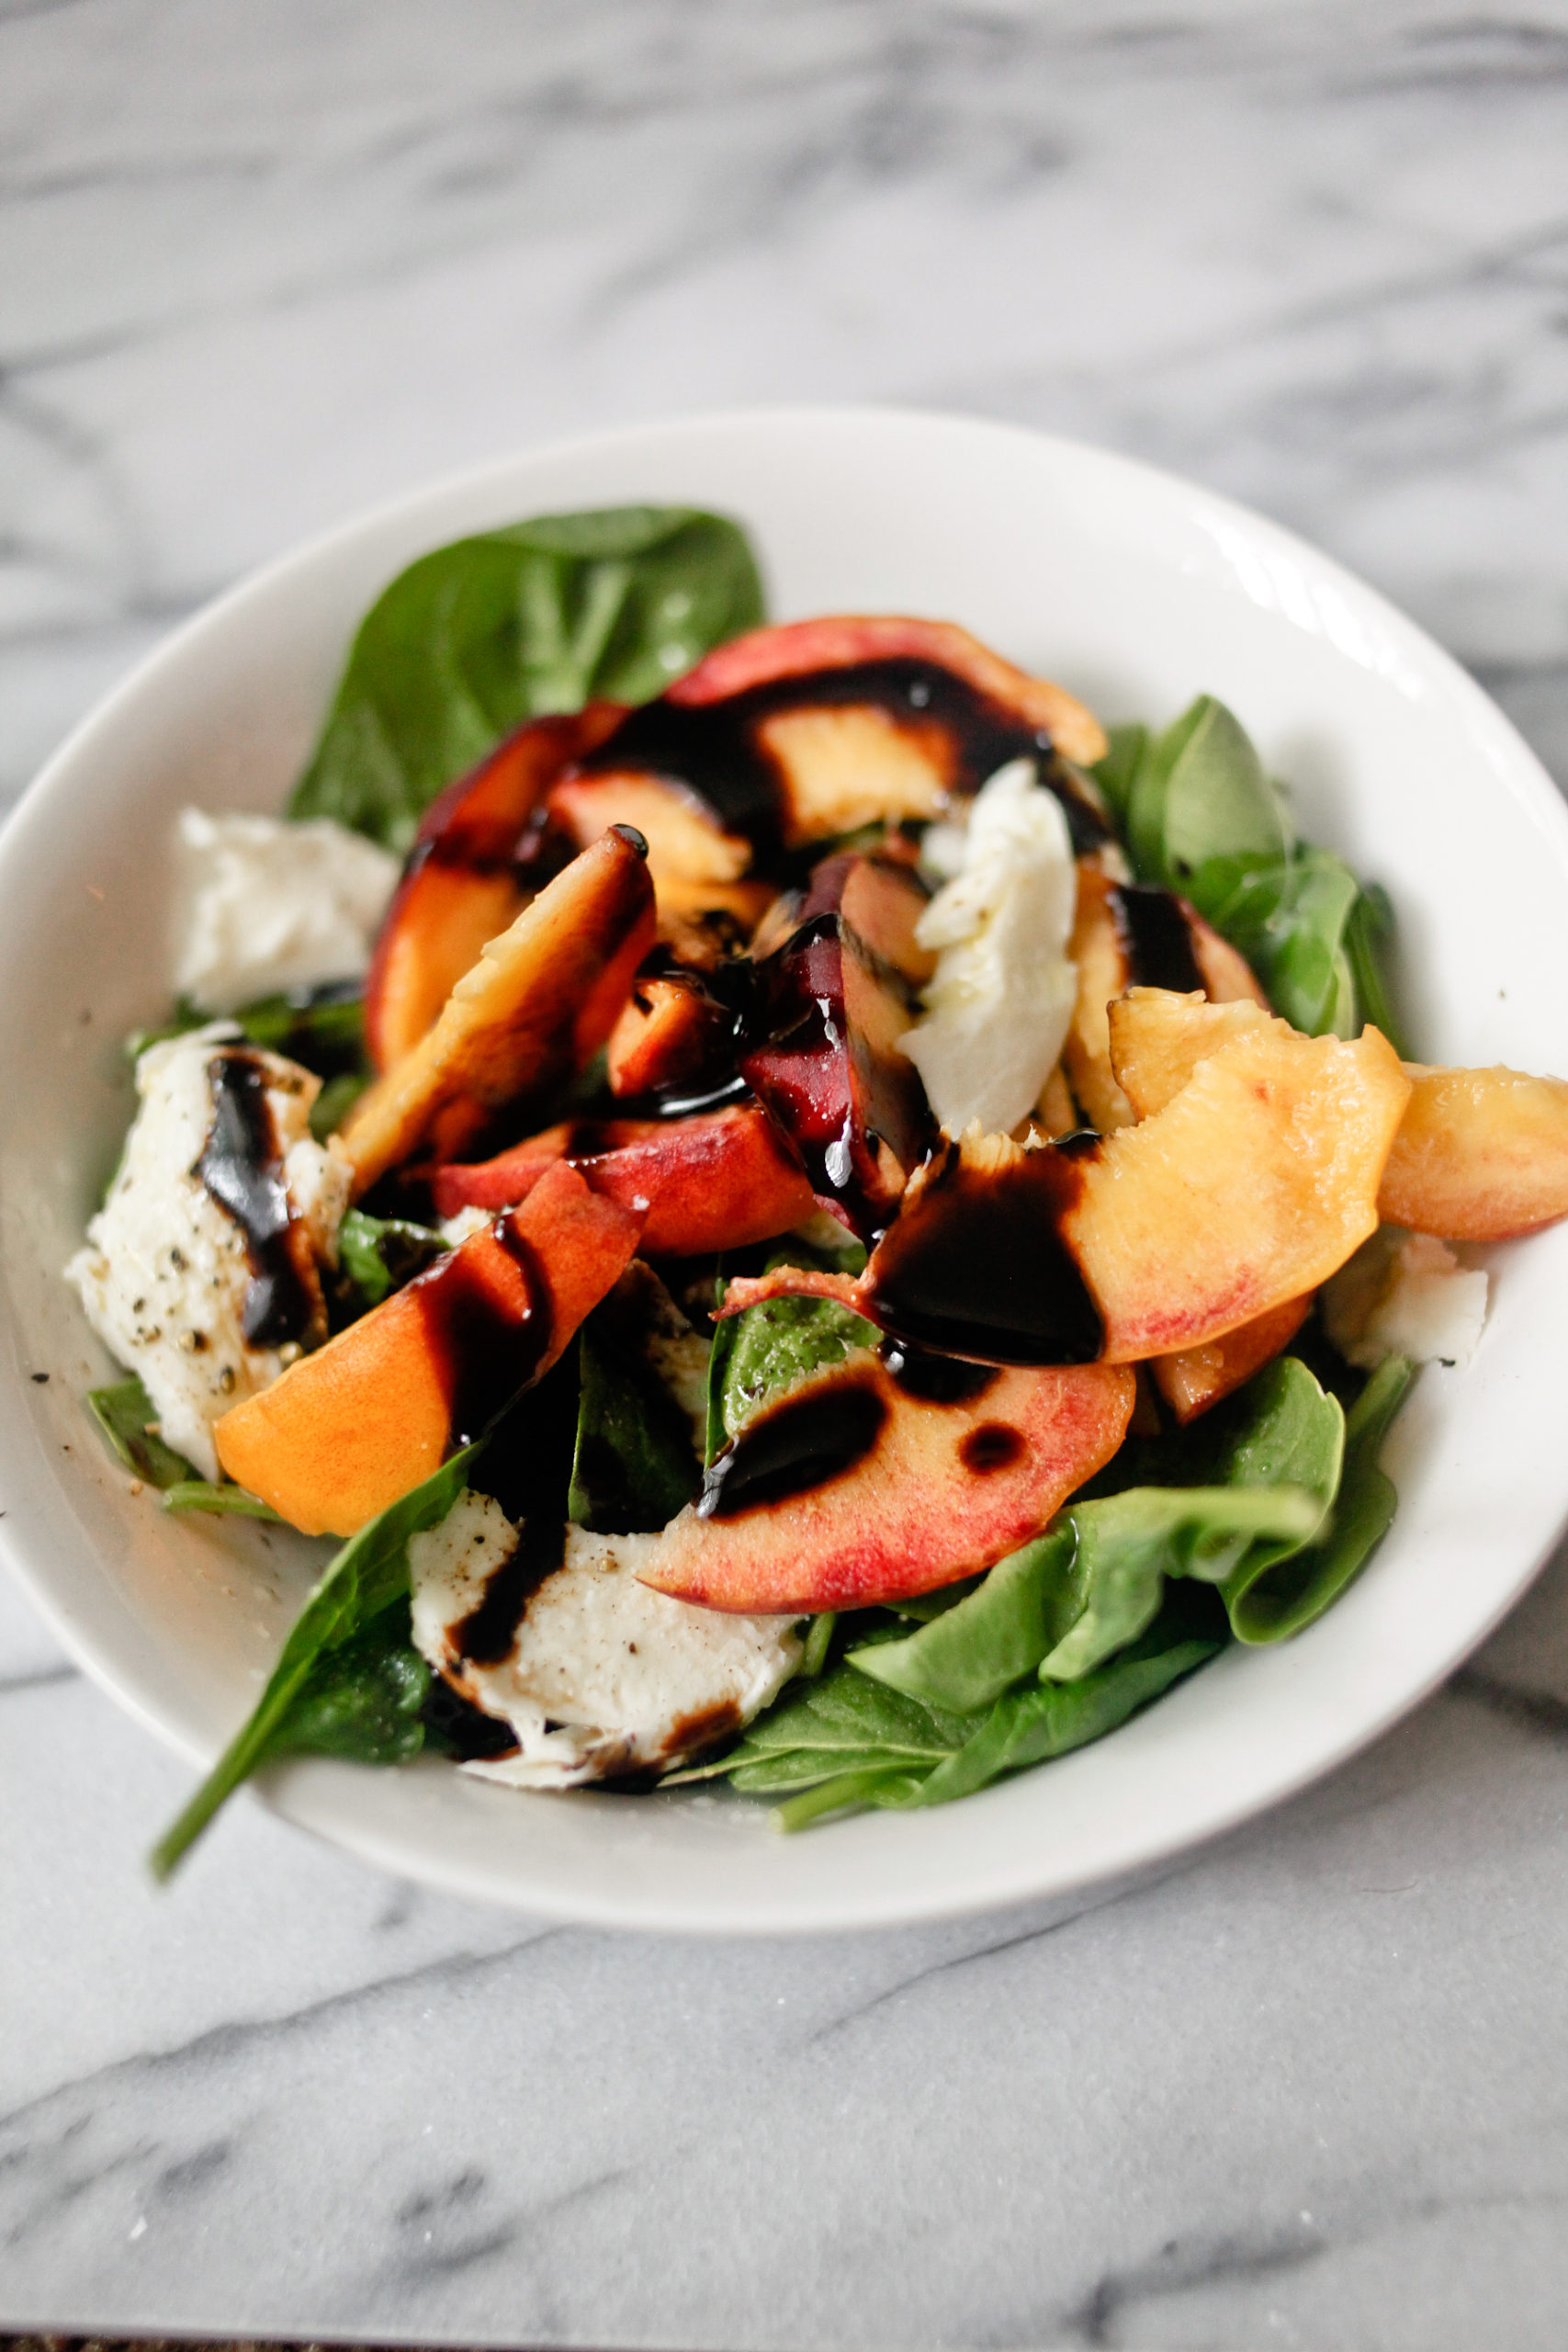 Peach Salad with Balsamic Glaze Recipe